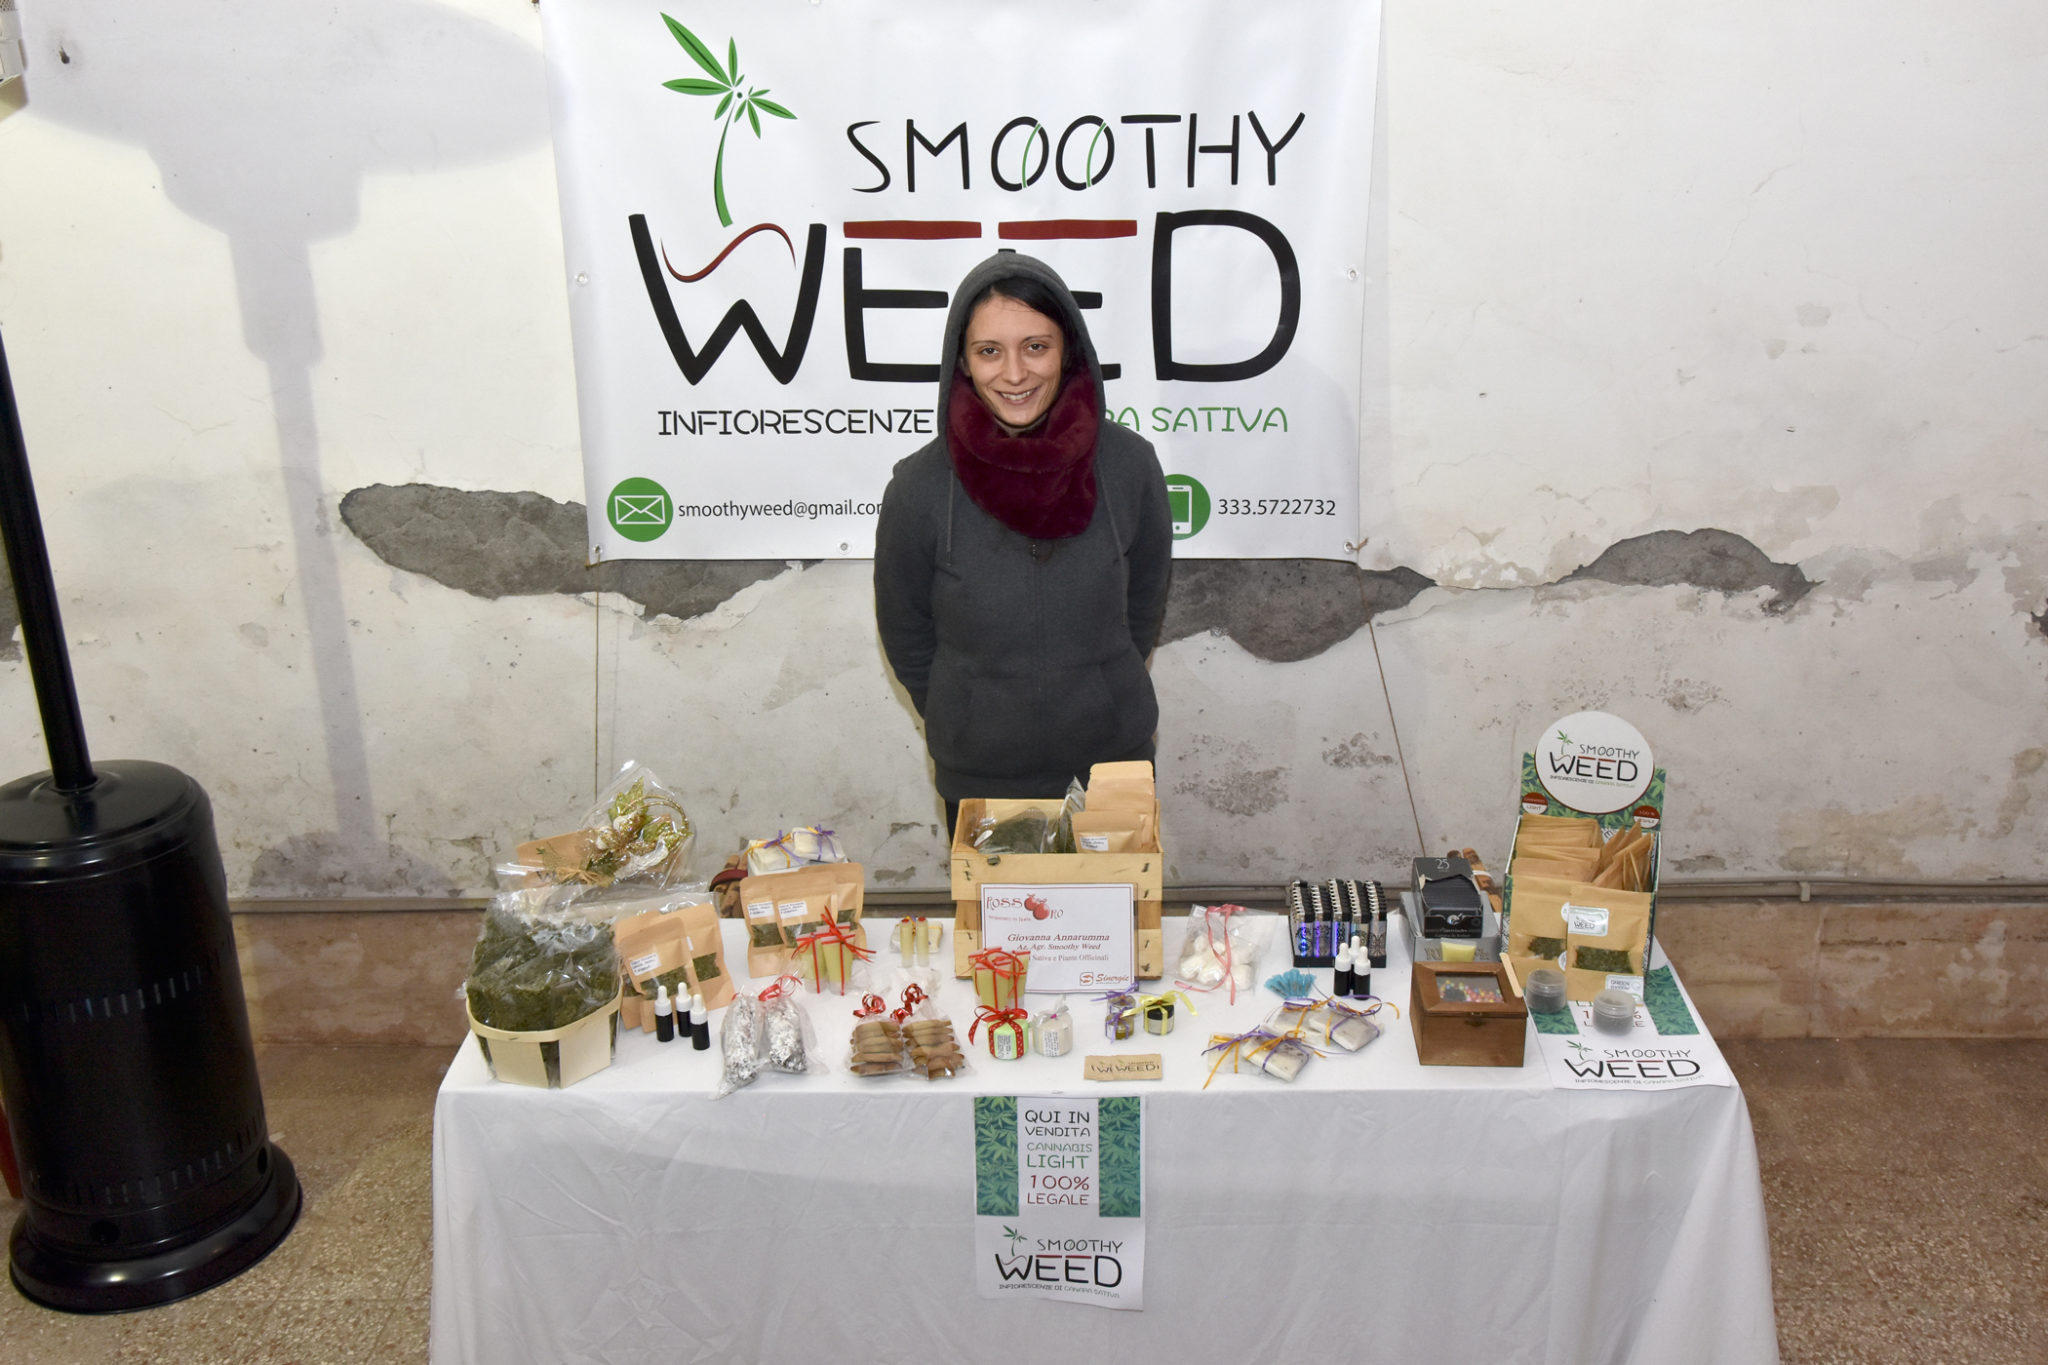 Smoothy Weed